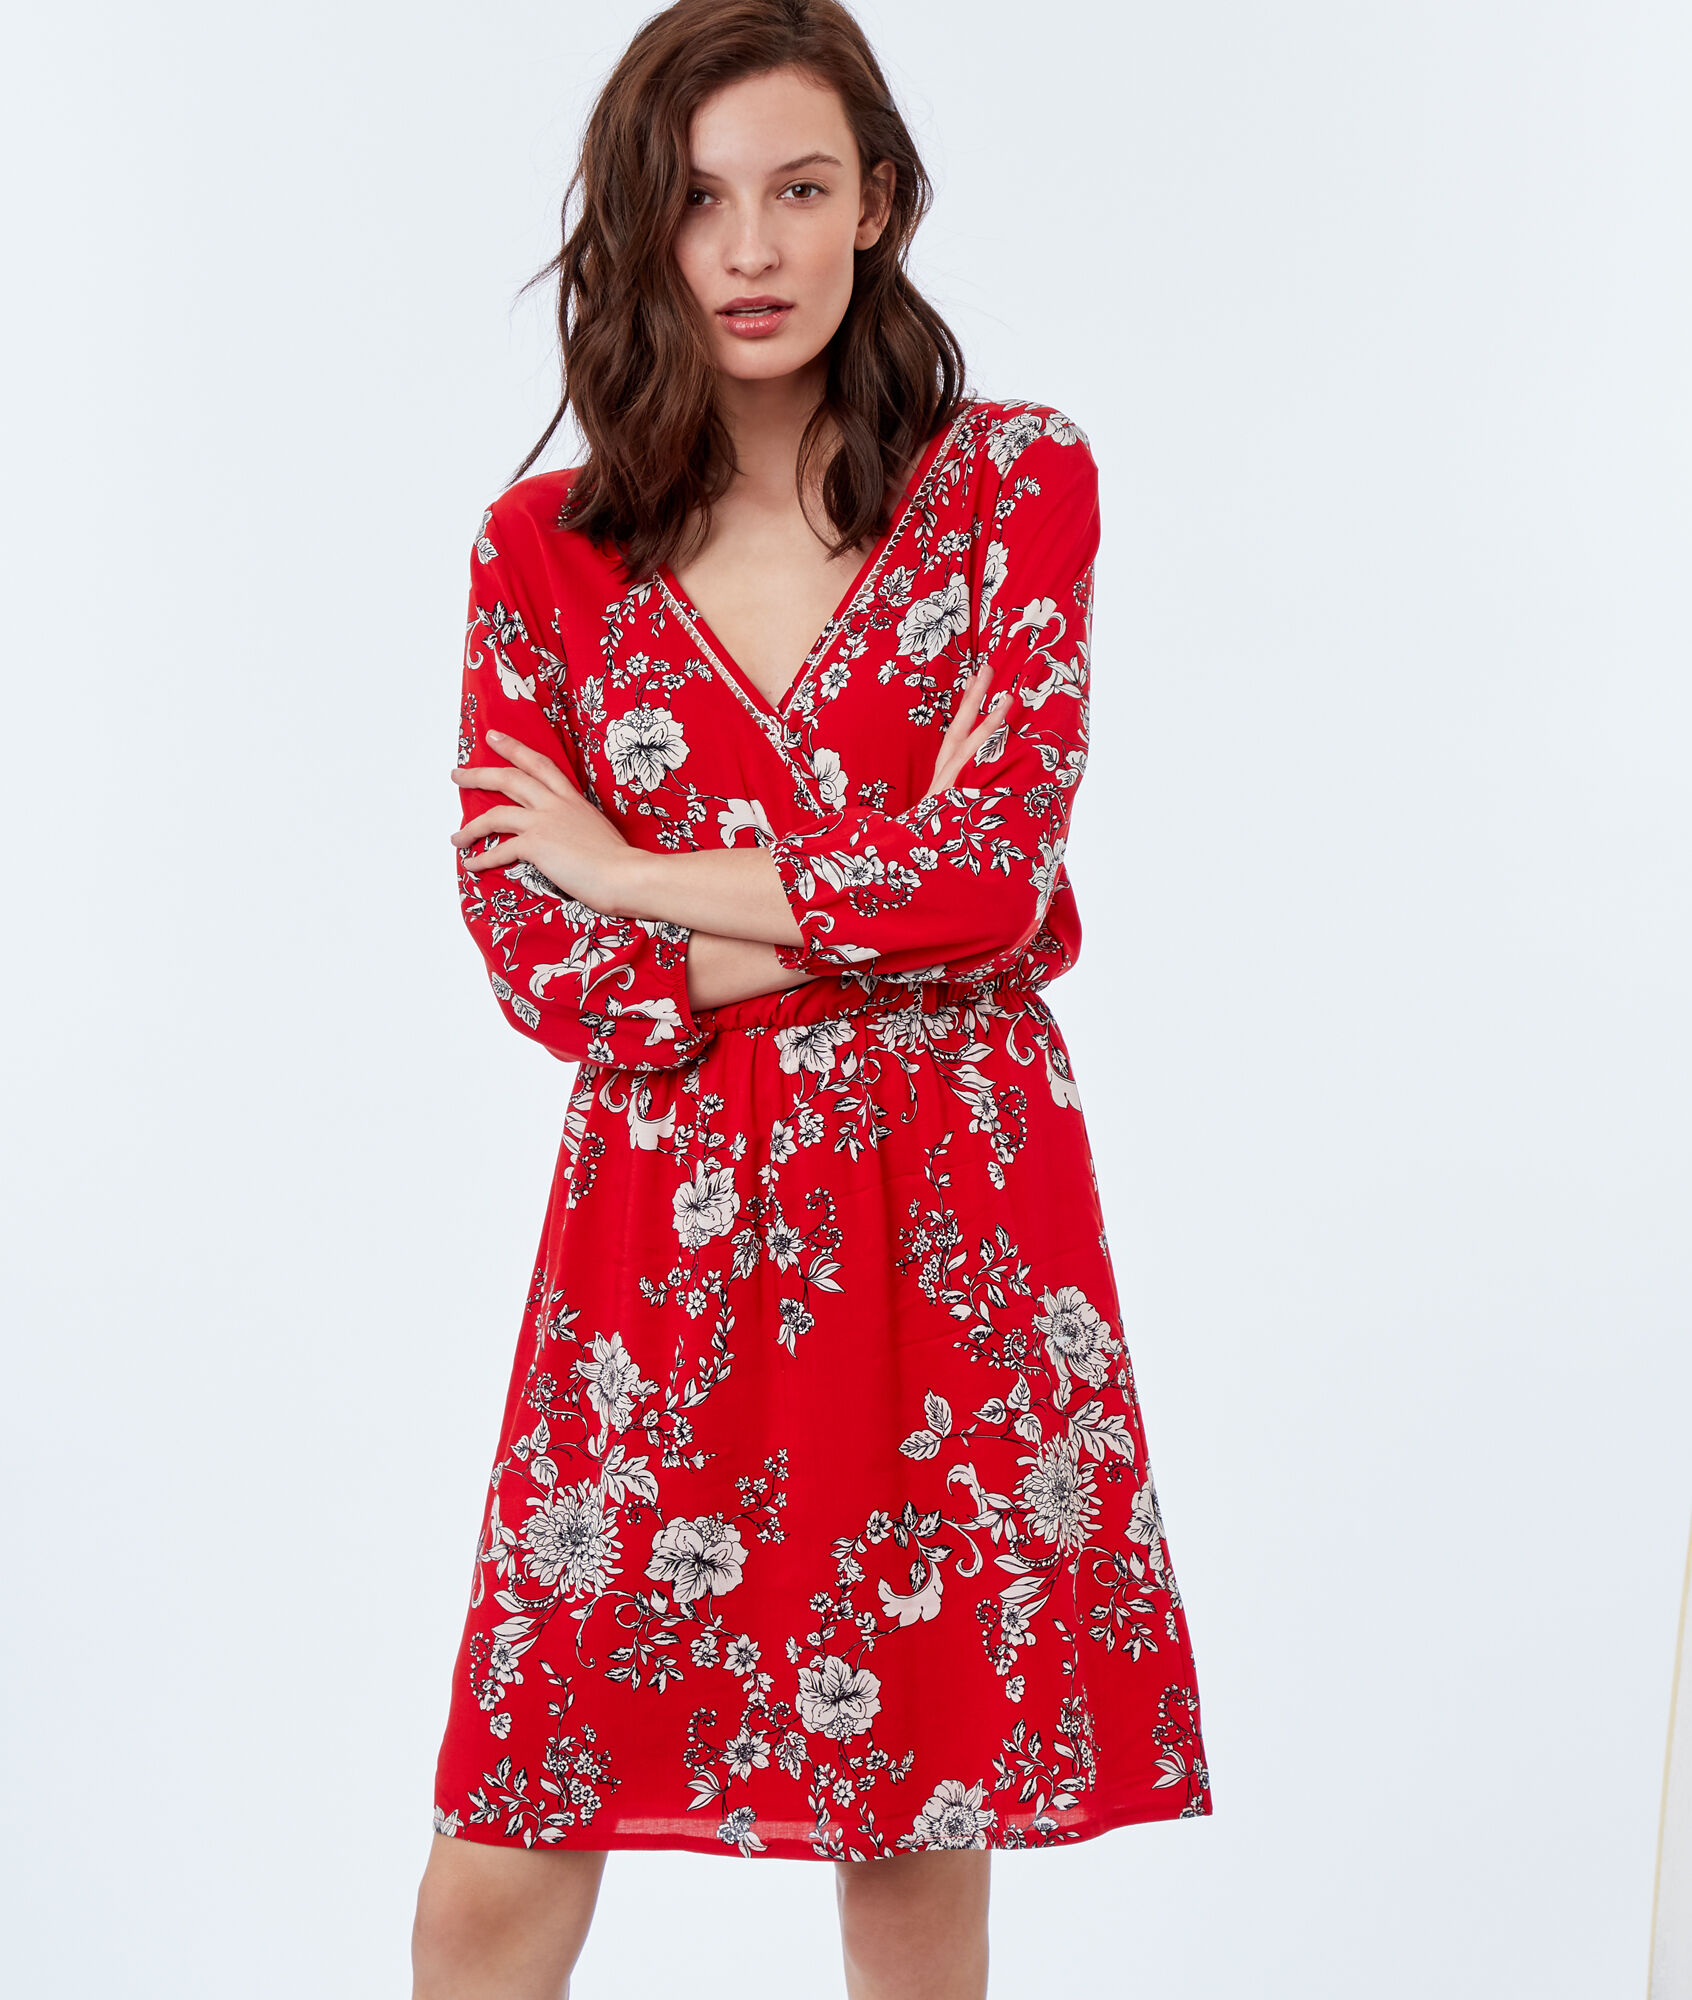 Robe bordeau etam